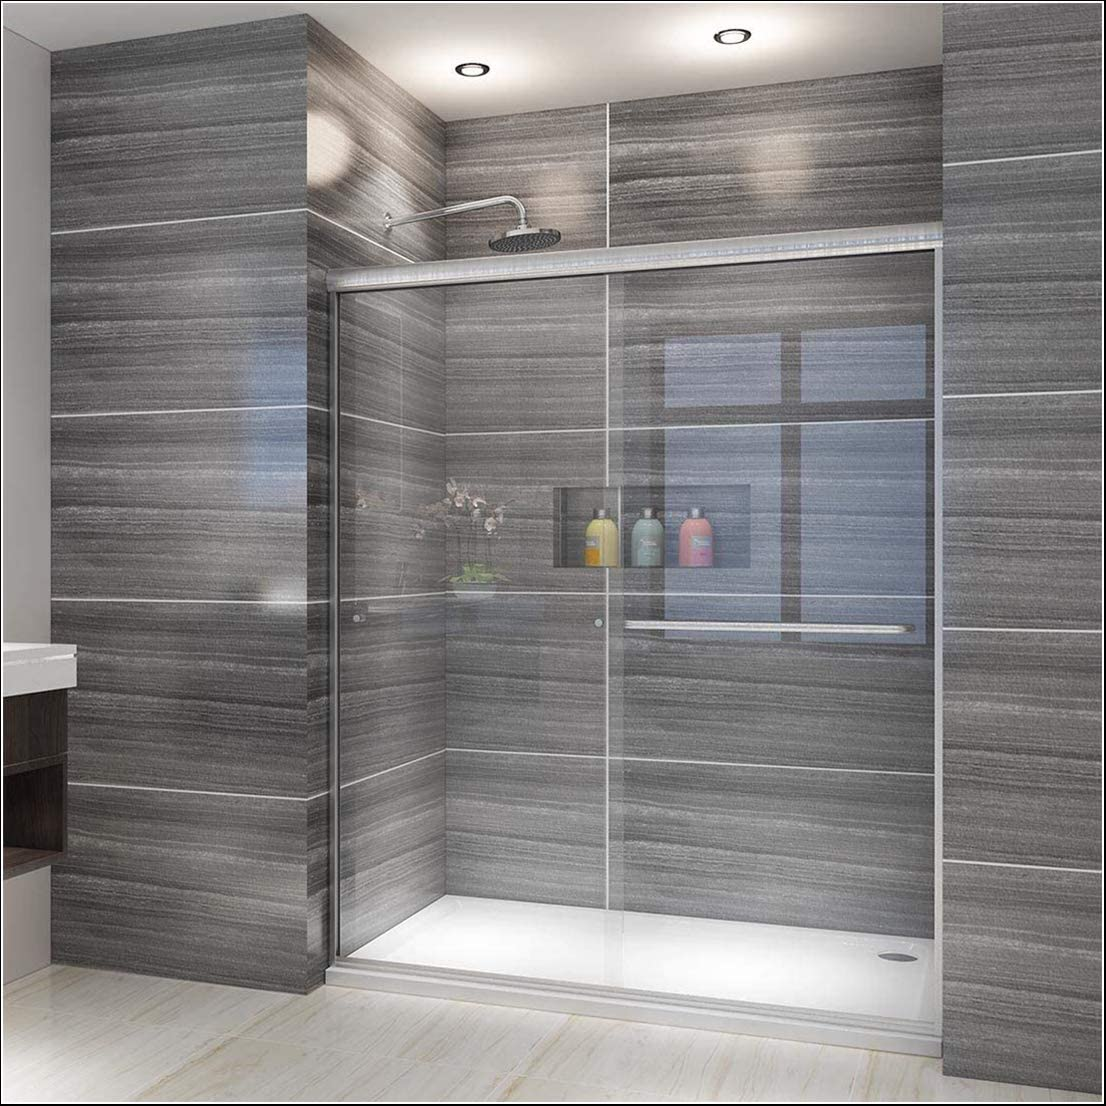 Elegant Showers 58 5 60 W X 72 H Semi Frameless Bypass Sliding Shower Doors 1 4 Clear Glass Brushed Nickel Finish Amazon Com